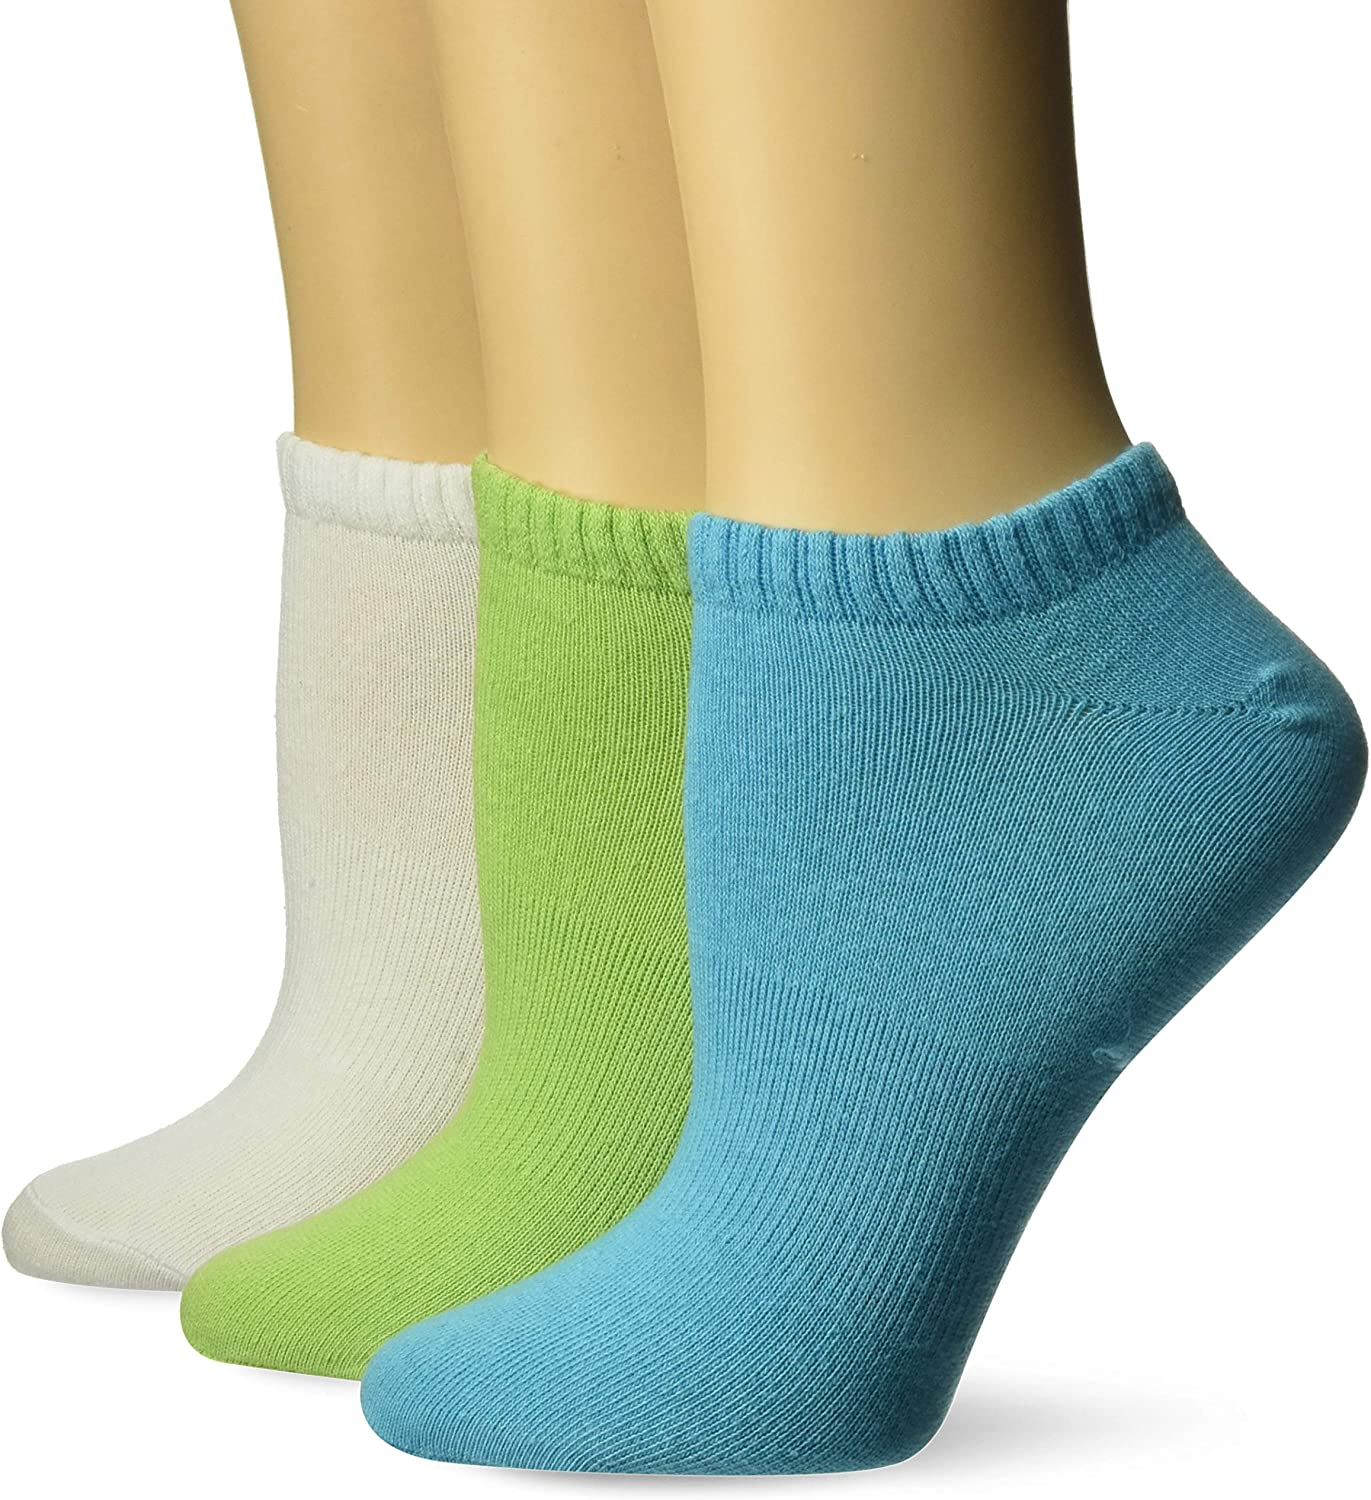 Fruit of the Loom Women's Made in USA 3-Pack Flat Knit Low Cut Sock, Apple/White/Turquoise, Shoe Size: 4-10